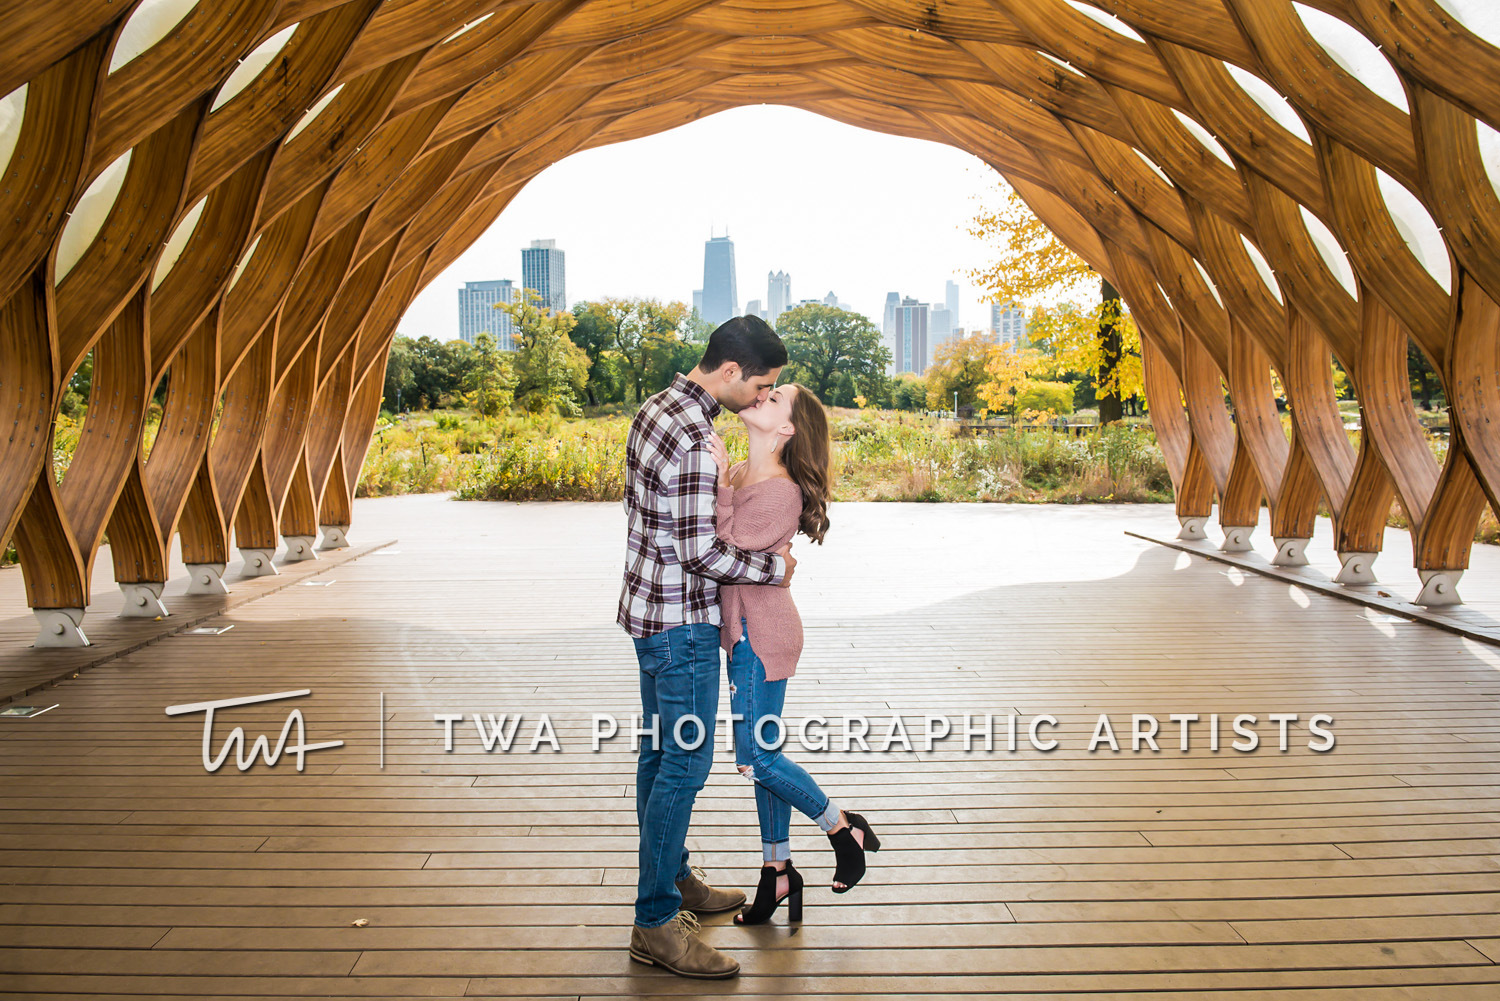 Chicago-Wedding-Photographer-TWA-Photographic-Artists-Lincoln-Park_Easterday_Siegel_LS-068